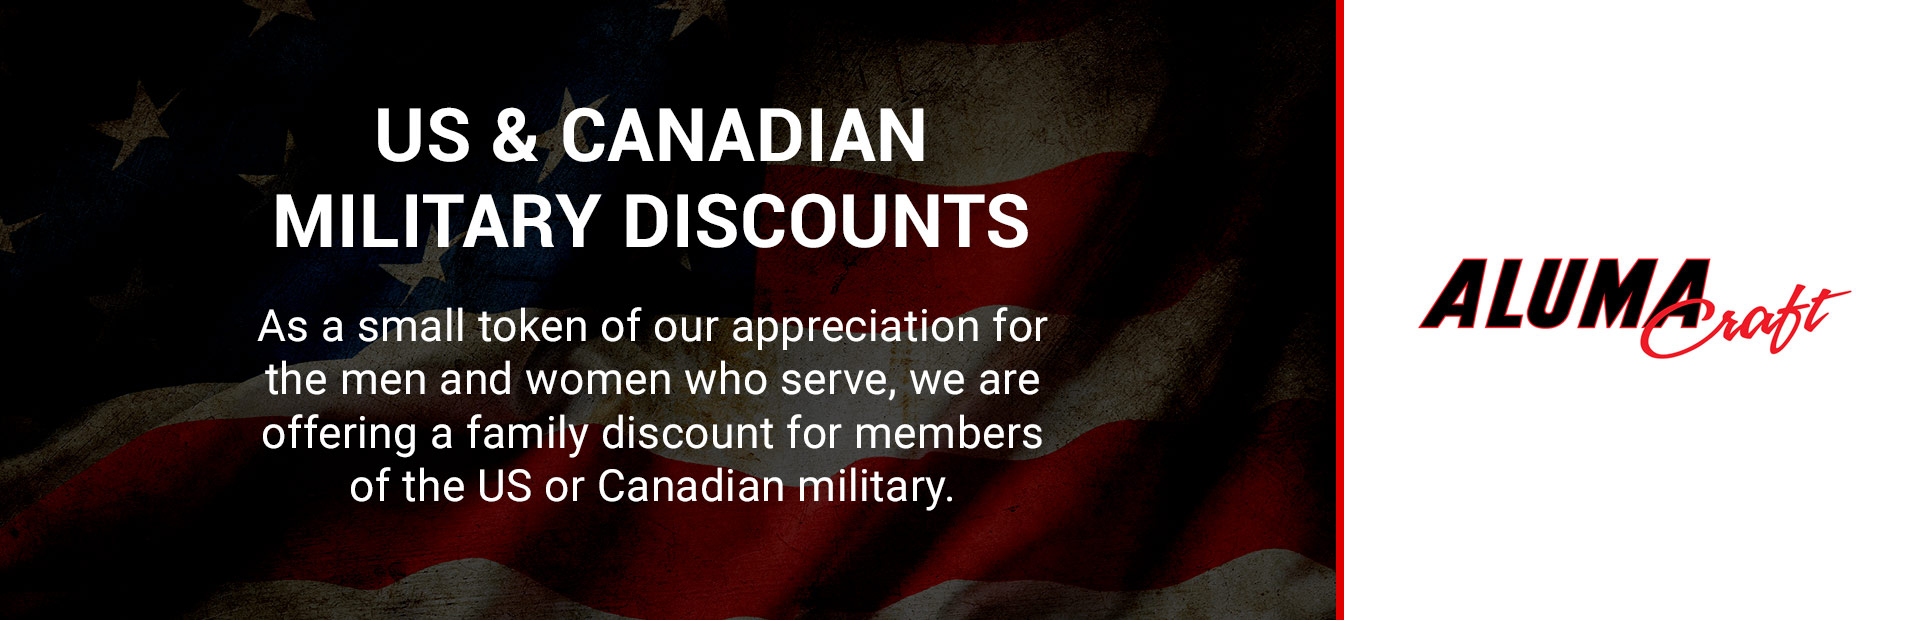 Alumacraft: US & Canadian Military Discounts